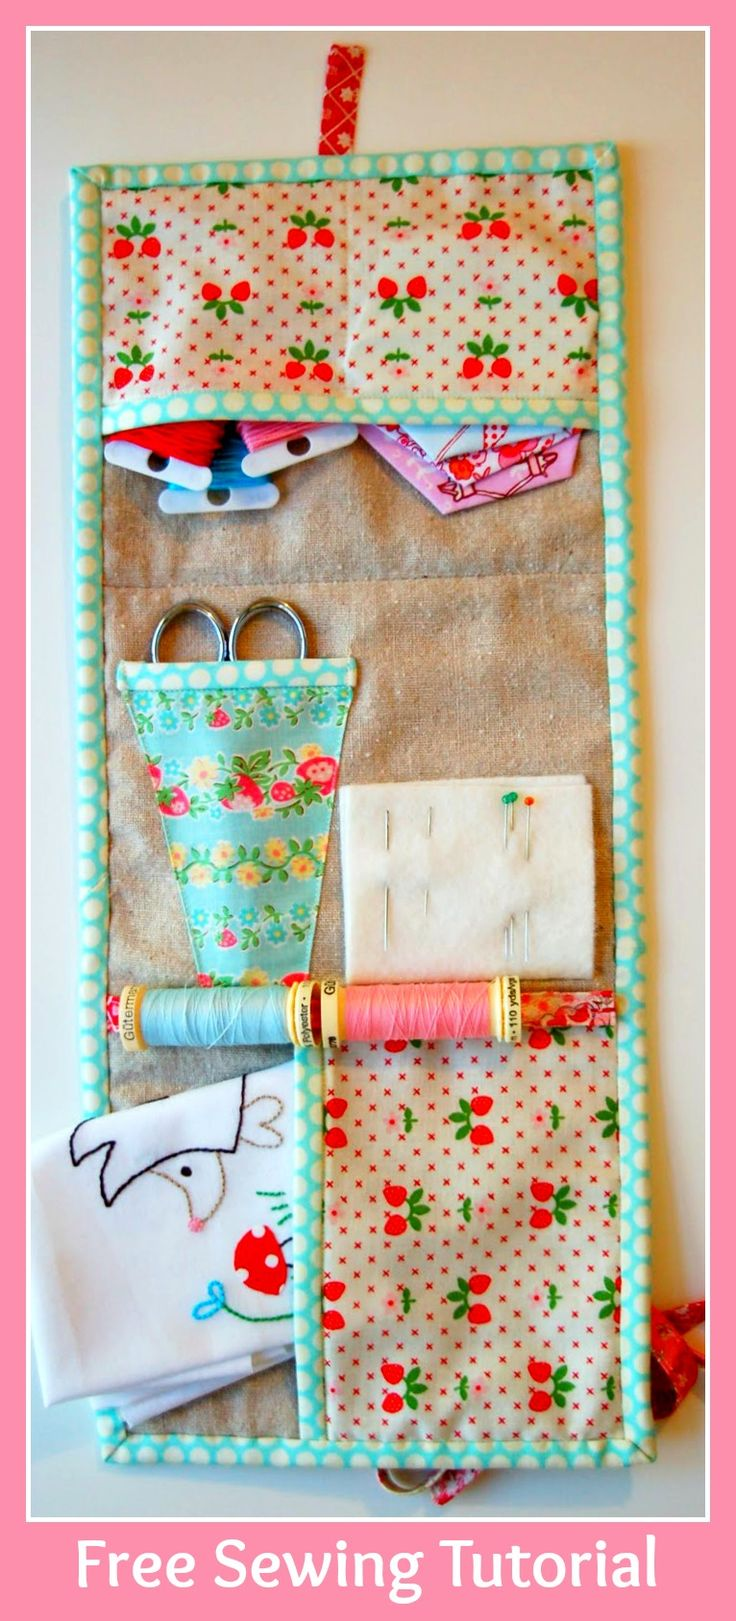 Lot's of Pink Patchwork Embroidery & Mending Kit - Free Sewing Tutorial  +  Quilt as You Go #1 - The Basic Technique